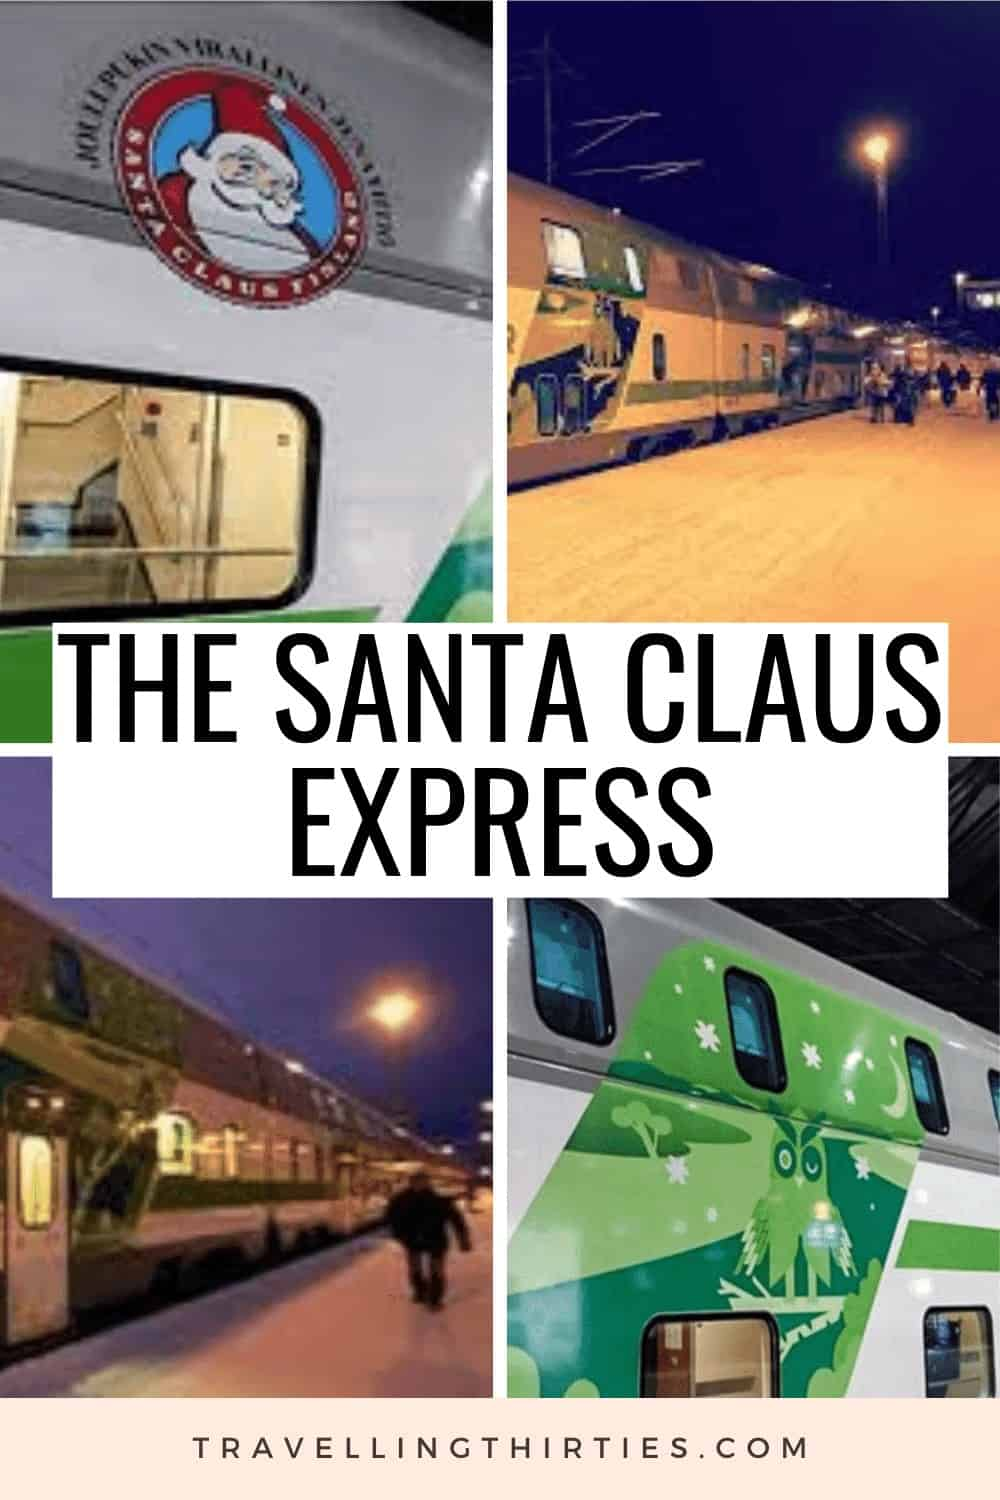 A pinterest Graphic for the Santa Claus Express Train